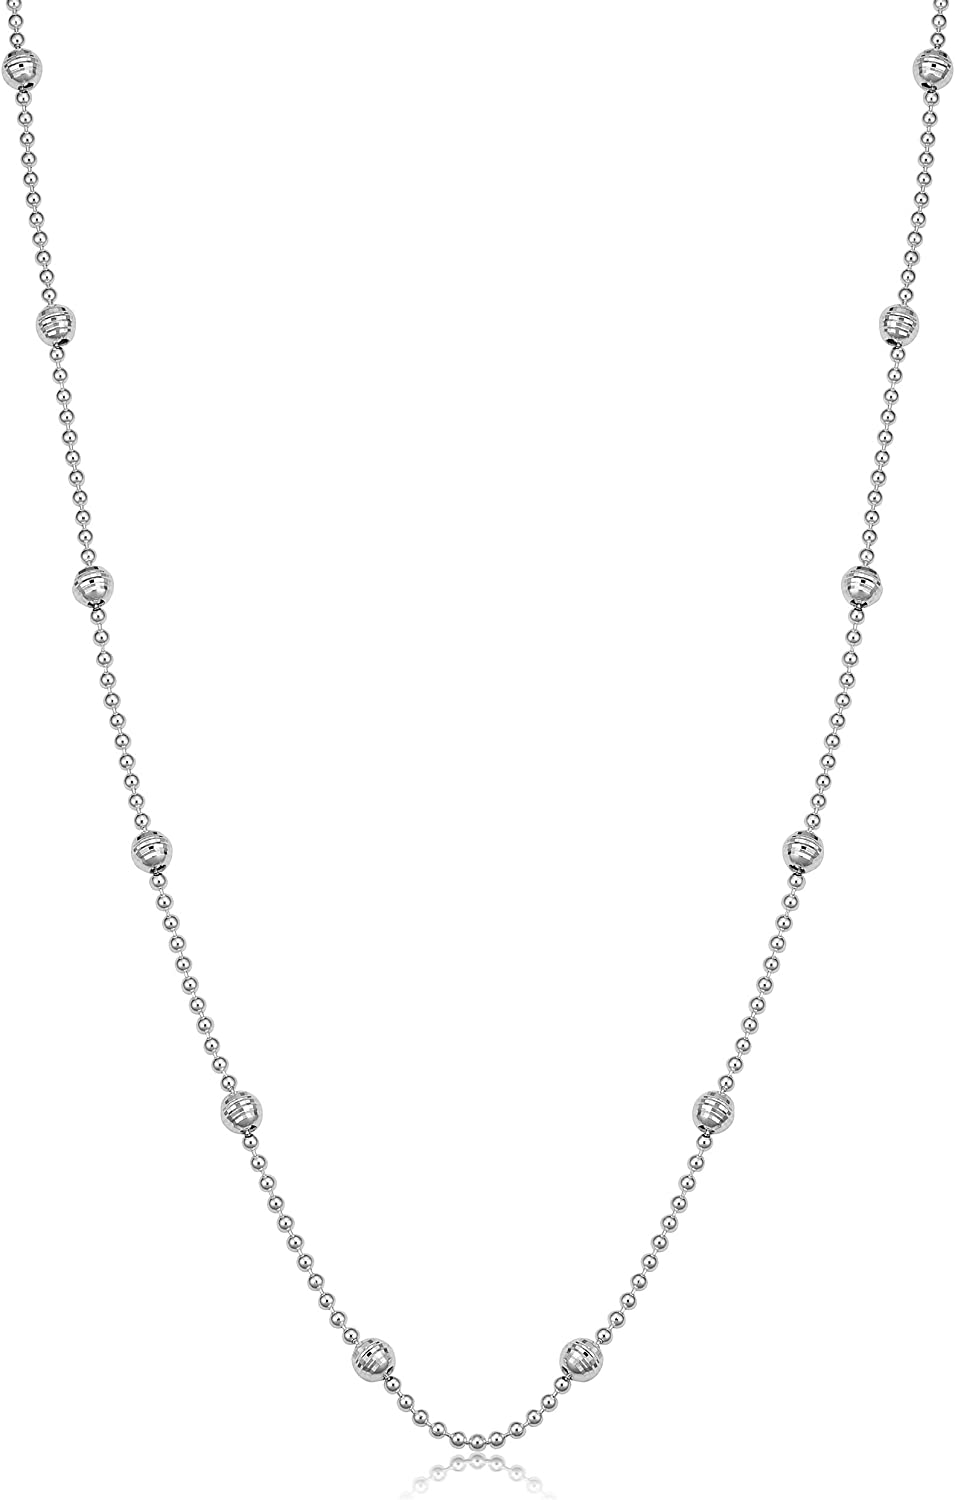 16, 18, 20, 22, 24, 30 or 36 inch Kooljewelry Sterling Silver 1.5 mm Ball and Bead Chain Necklace